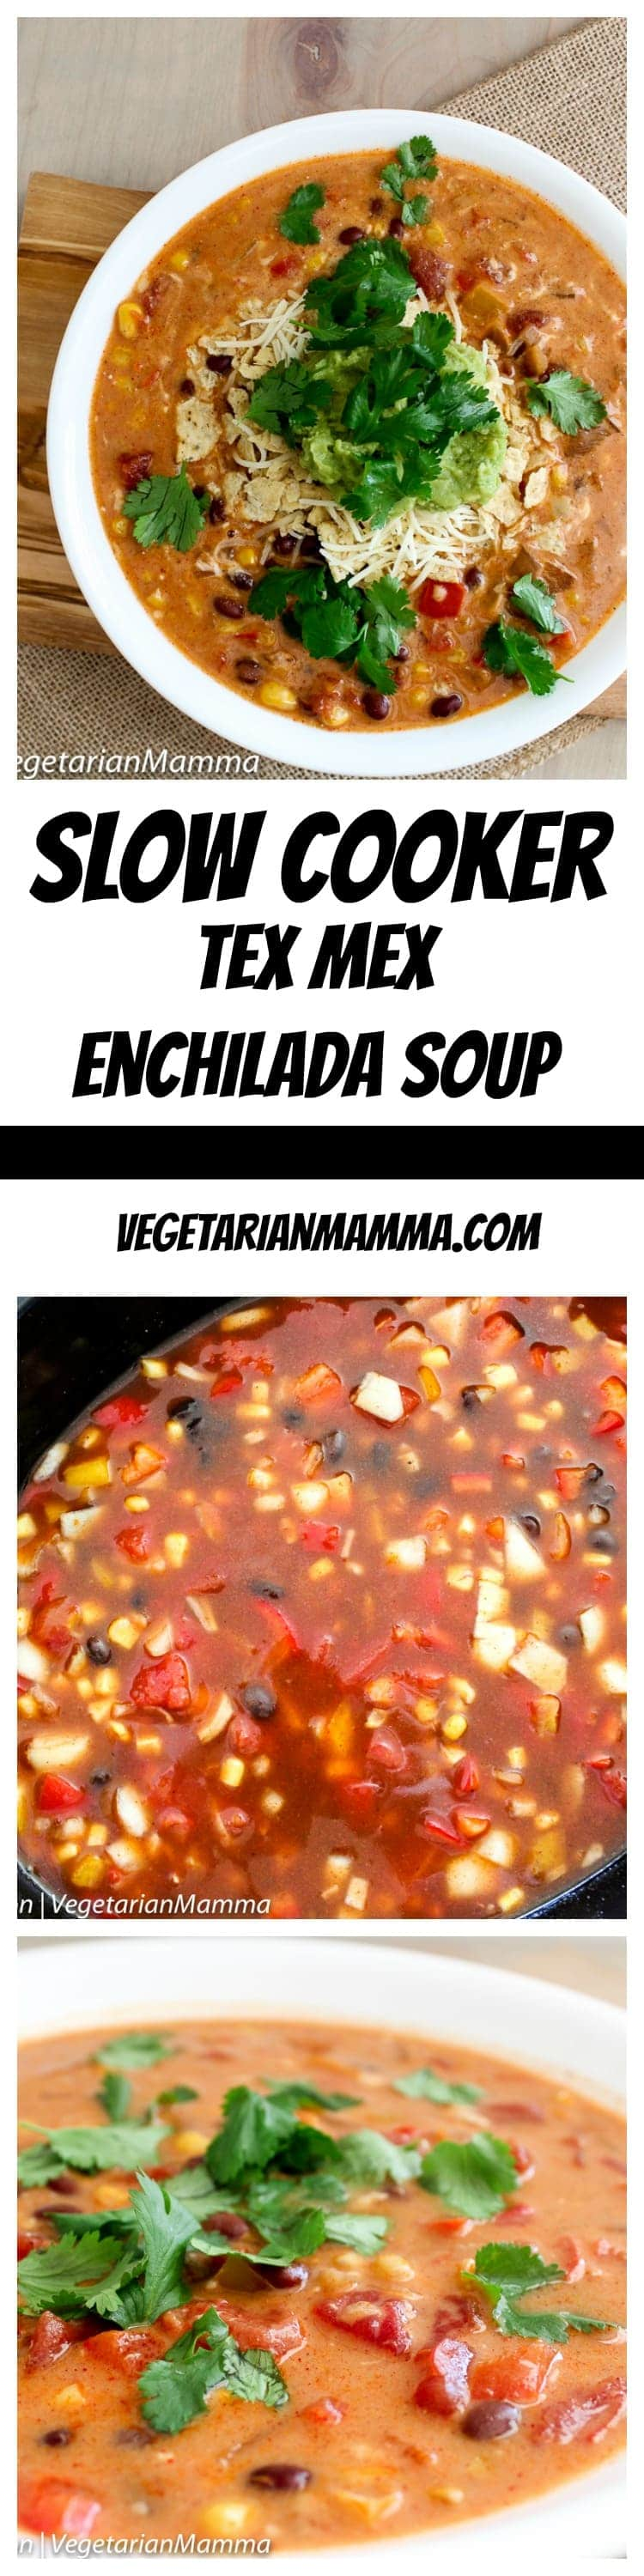 Crockpot Cheesy Enchilada Soup is a delicious soup that basically makes itself! Who doesn't love a slowcooker meal? This vegetarian slow cooker enchilada soup is sure to please! #soup #crockpot